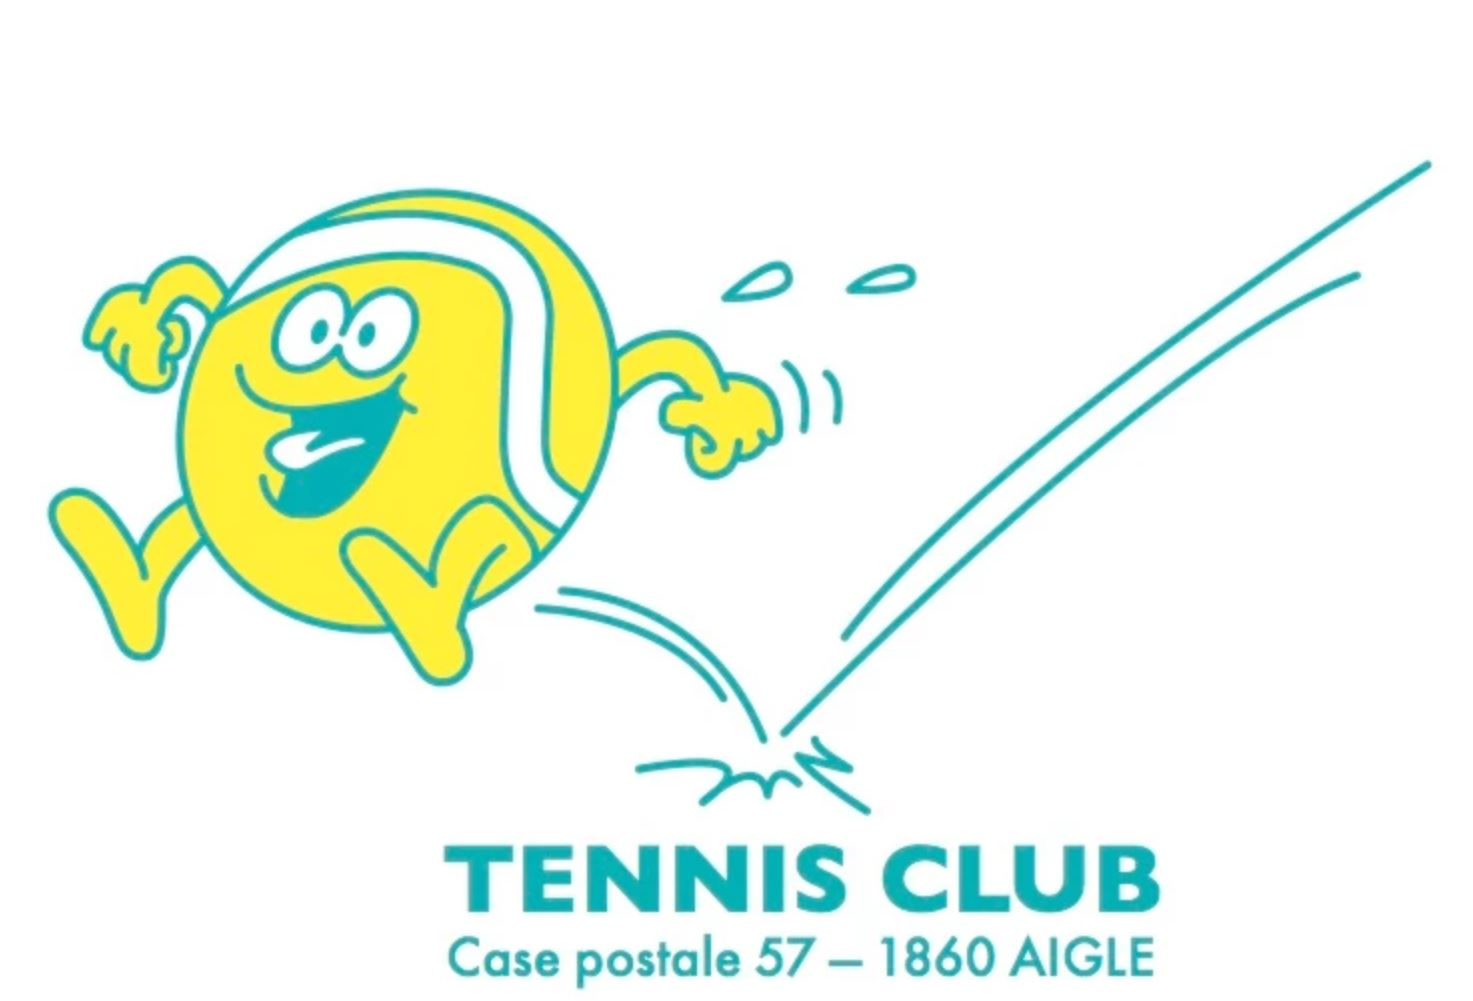 Tennis Club Aigle